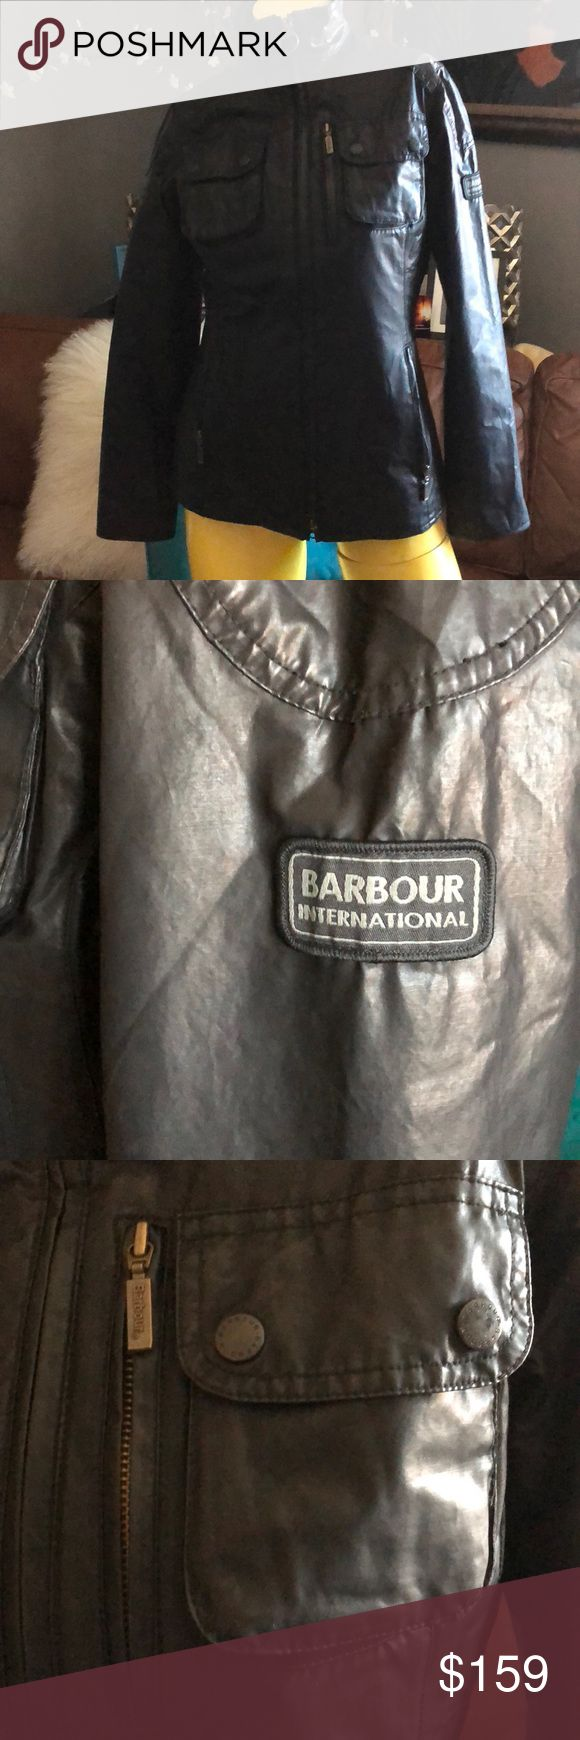 BARBOUR WAX JACKET BARBOUR WAX JACKET NWOT  SIZE 4; FABULOUSLY Constructed... classic utility jacket in waxed cotton; 💦 waterproof with quilted lining; zip front; lots of pockets... semi-fitted silhouette... NEVER WORN; NWOT Barbour Jackets & Coats